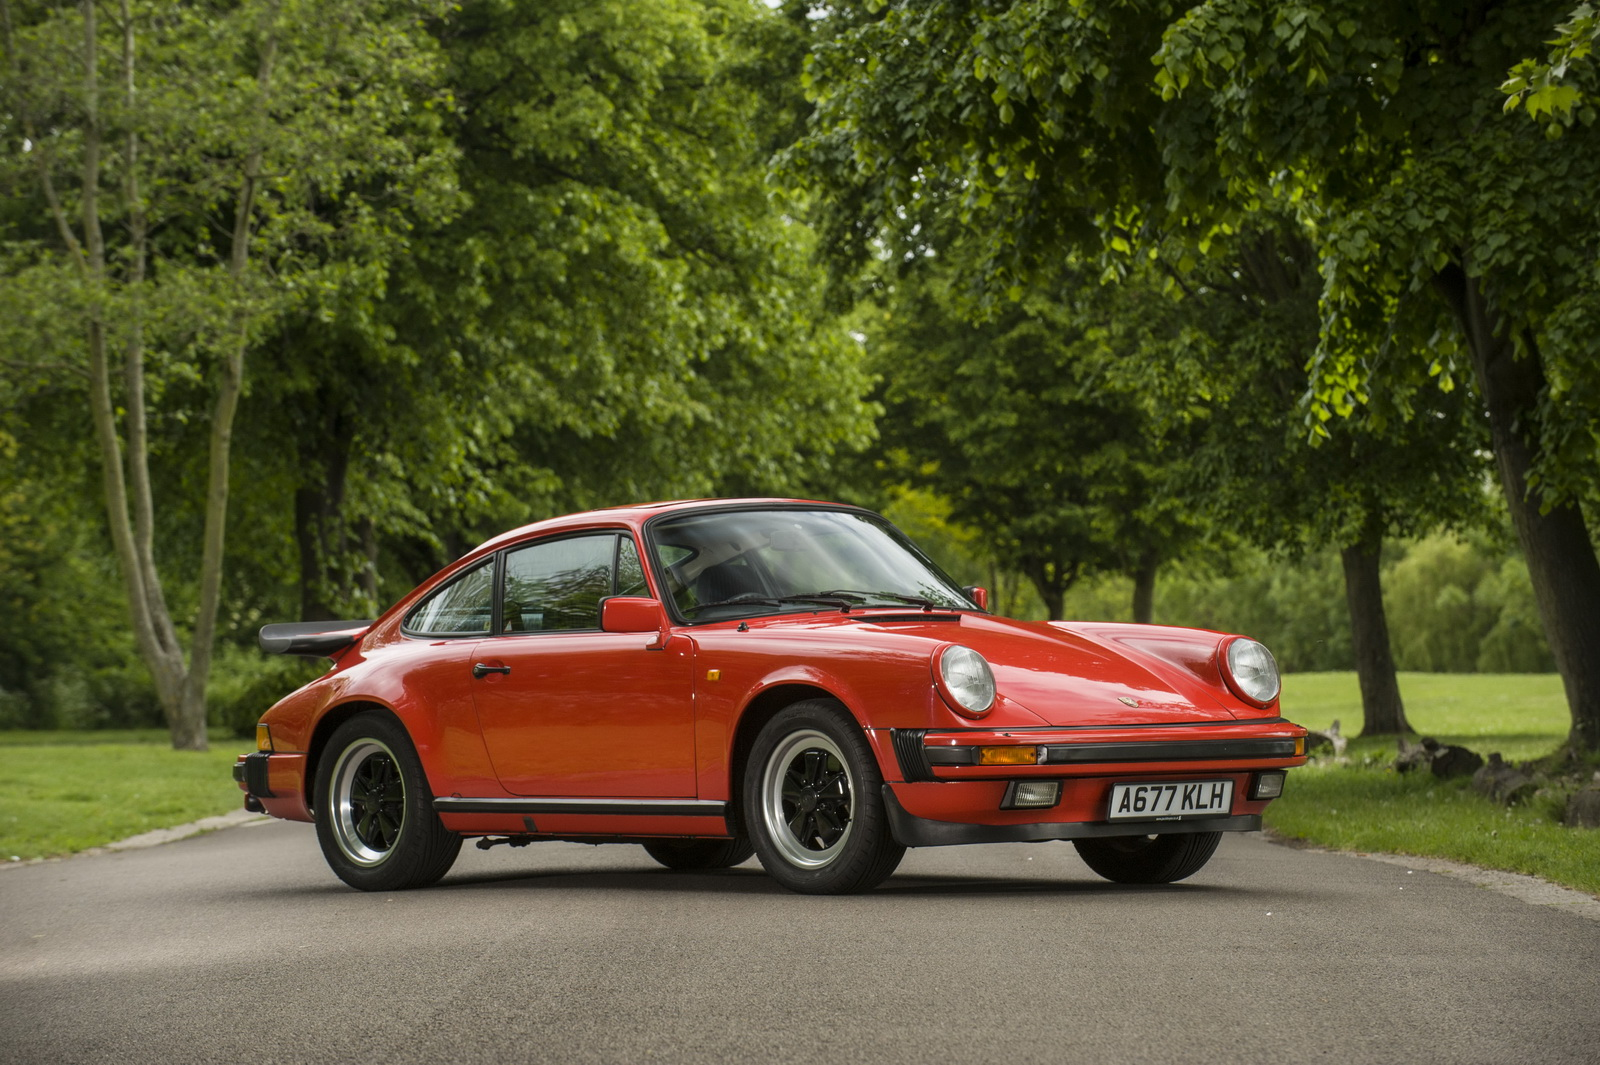 james may 39 s classic porsche 911 sells for over 50 000 gtspirit. Black Bedroom Furniture Sets. Home Design Ideas